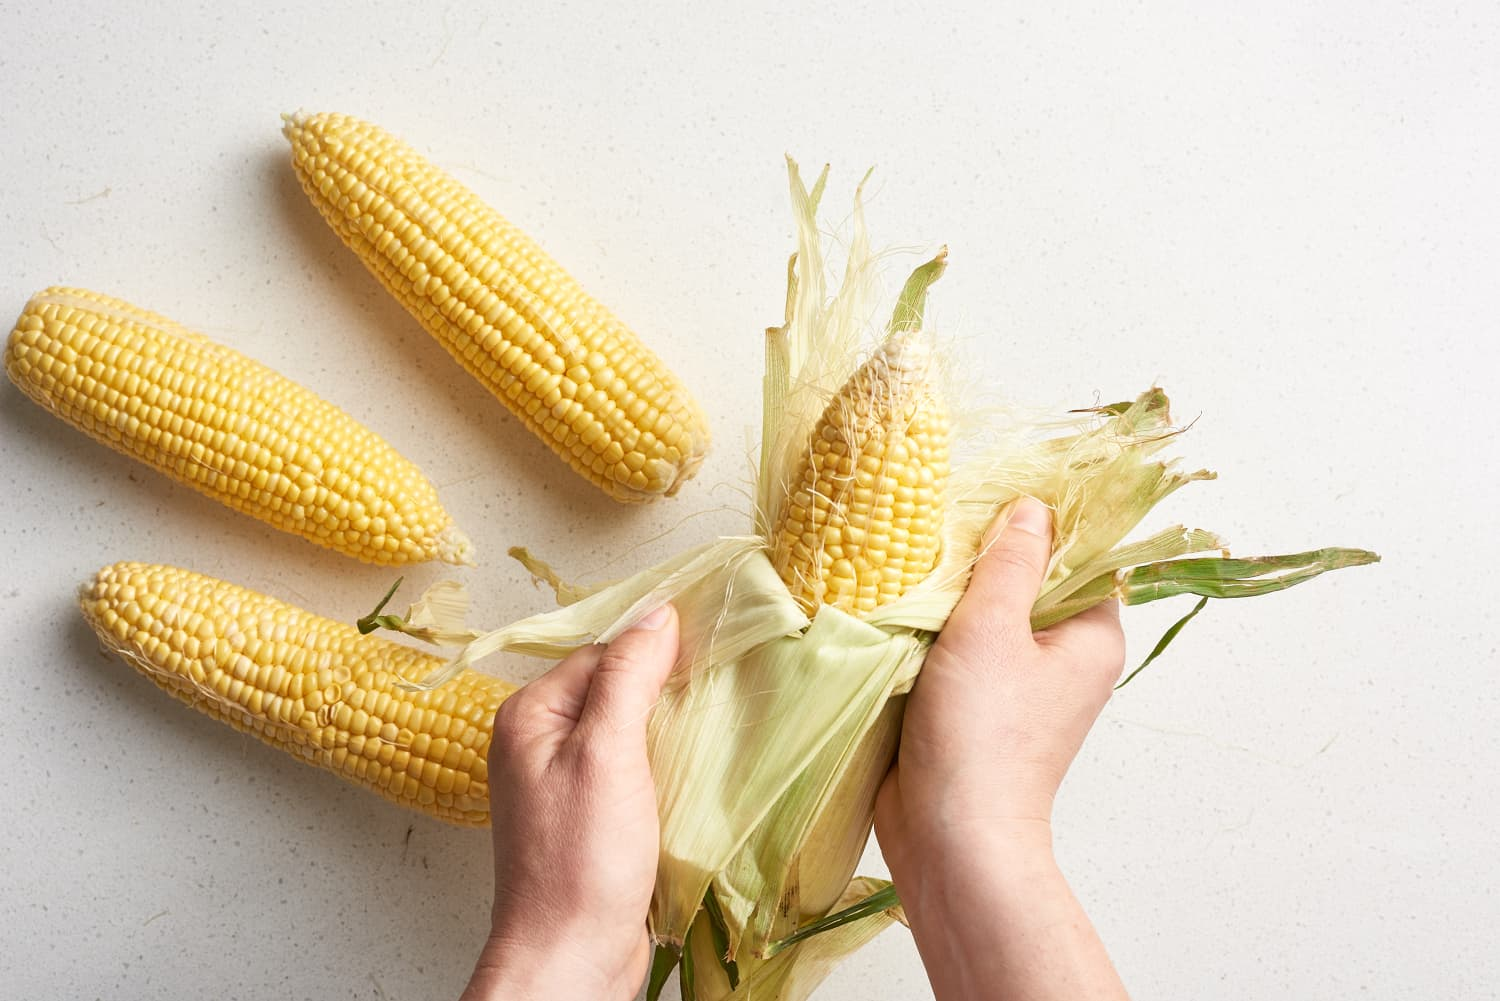 The Perfect Tool for De-Silking Corn Exists — And It's Probably Already in Your Kitchen